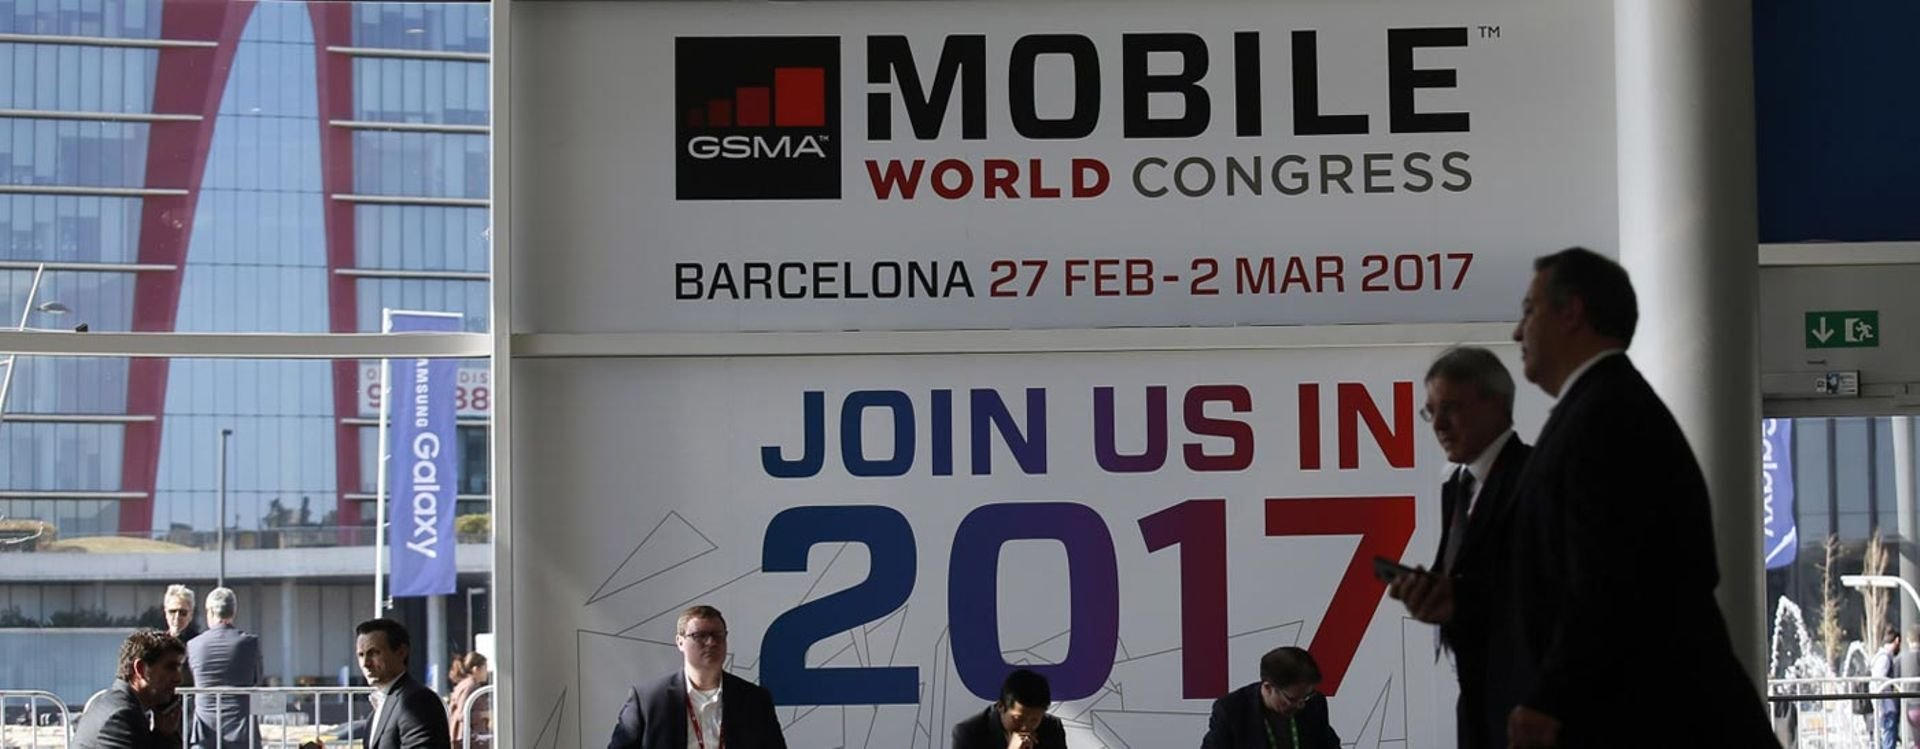 The Countdown begins for Barcelona's Mobile World Congress 2017